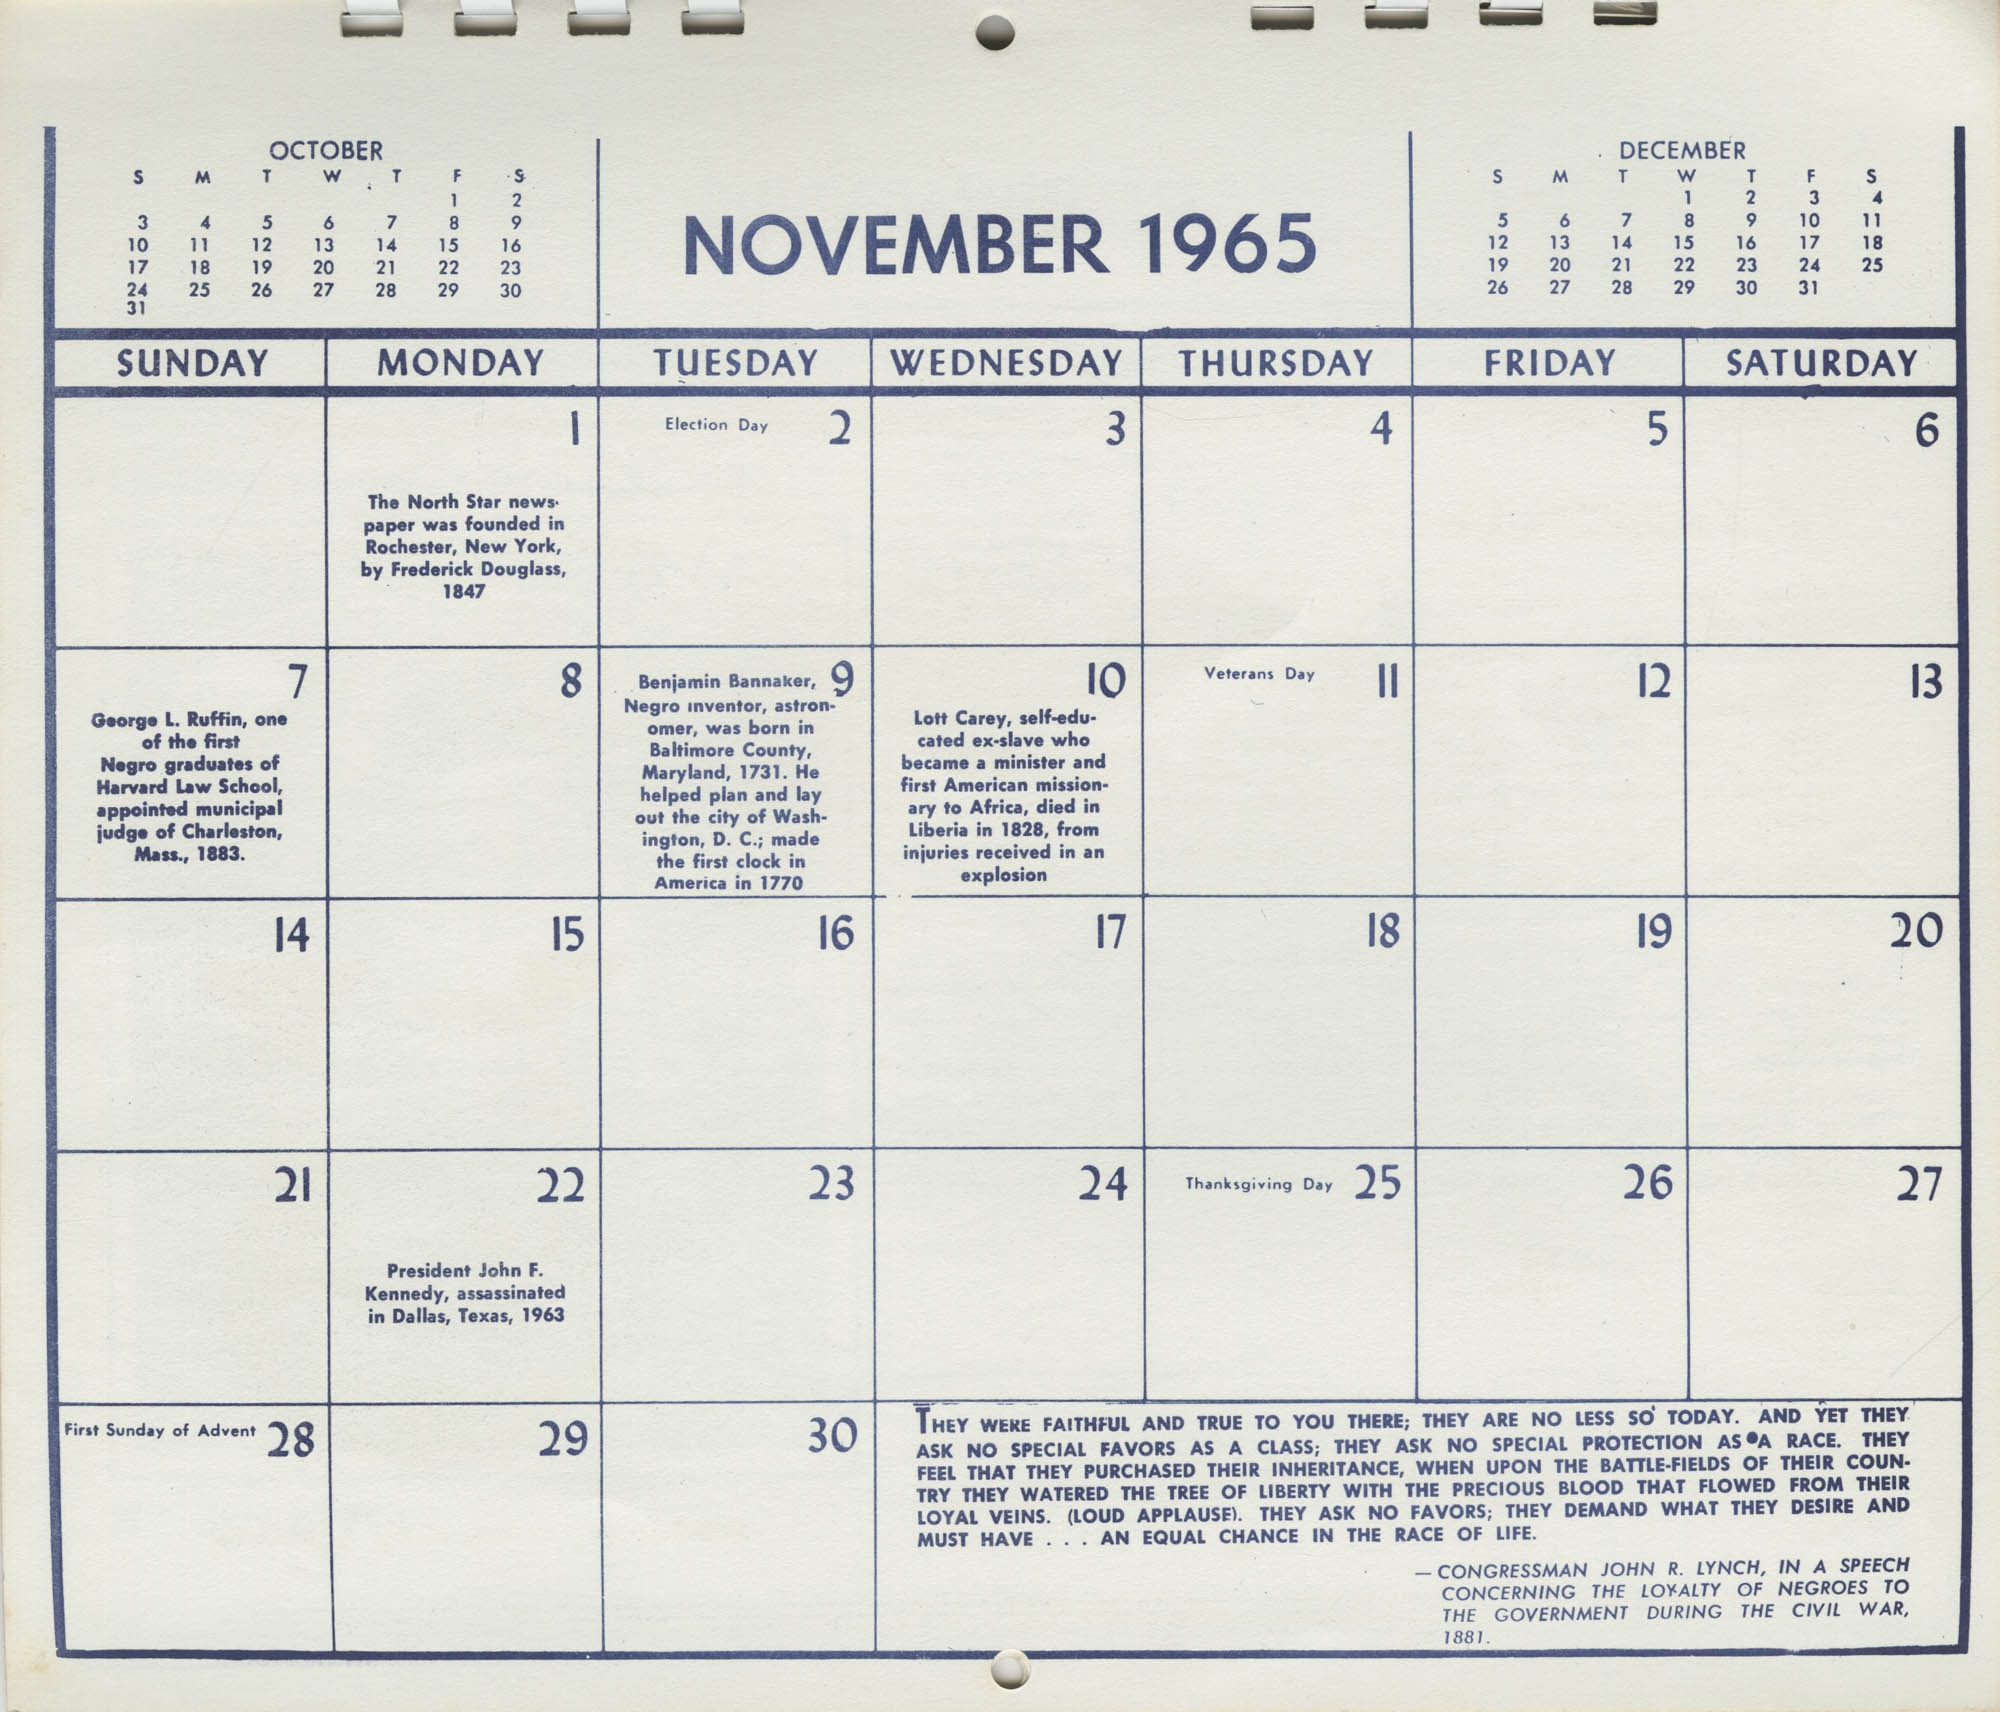 Southern Christian Leadership Conference Newsletter Calendar, November 1965, Bottom